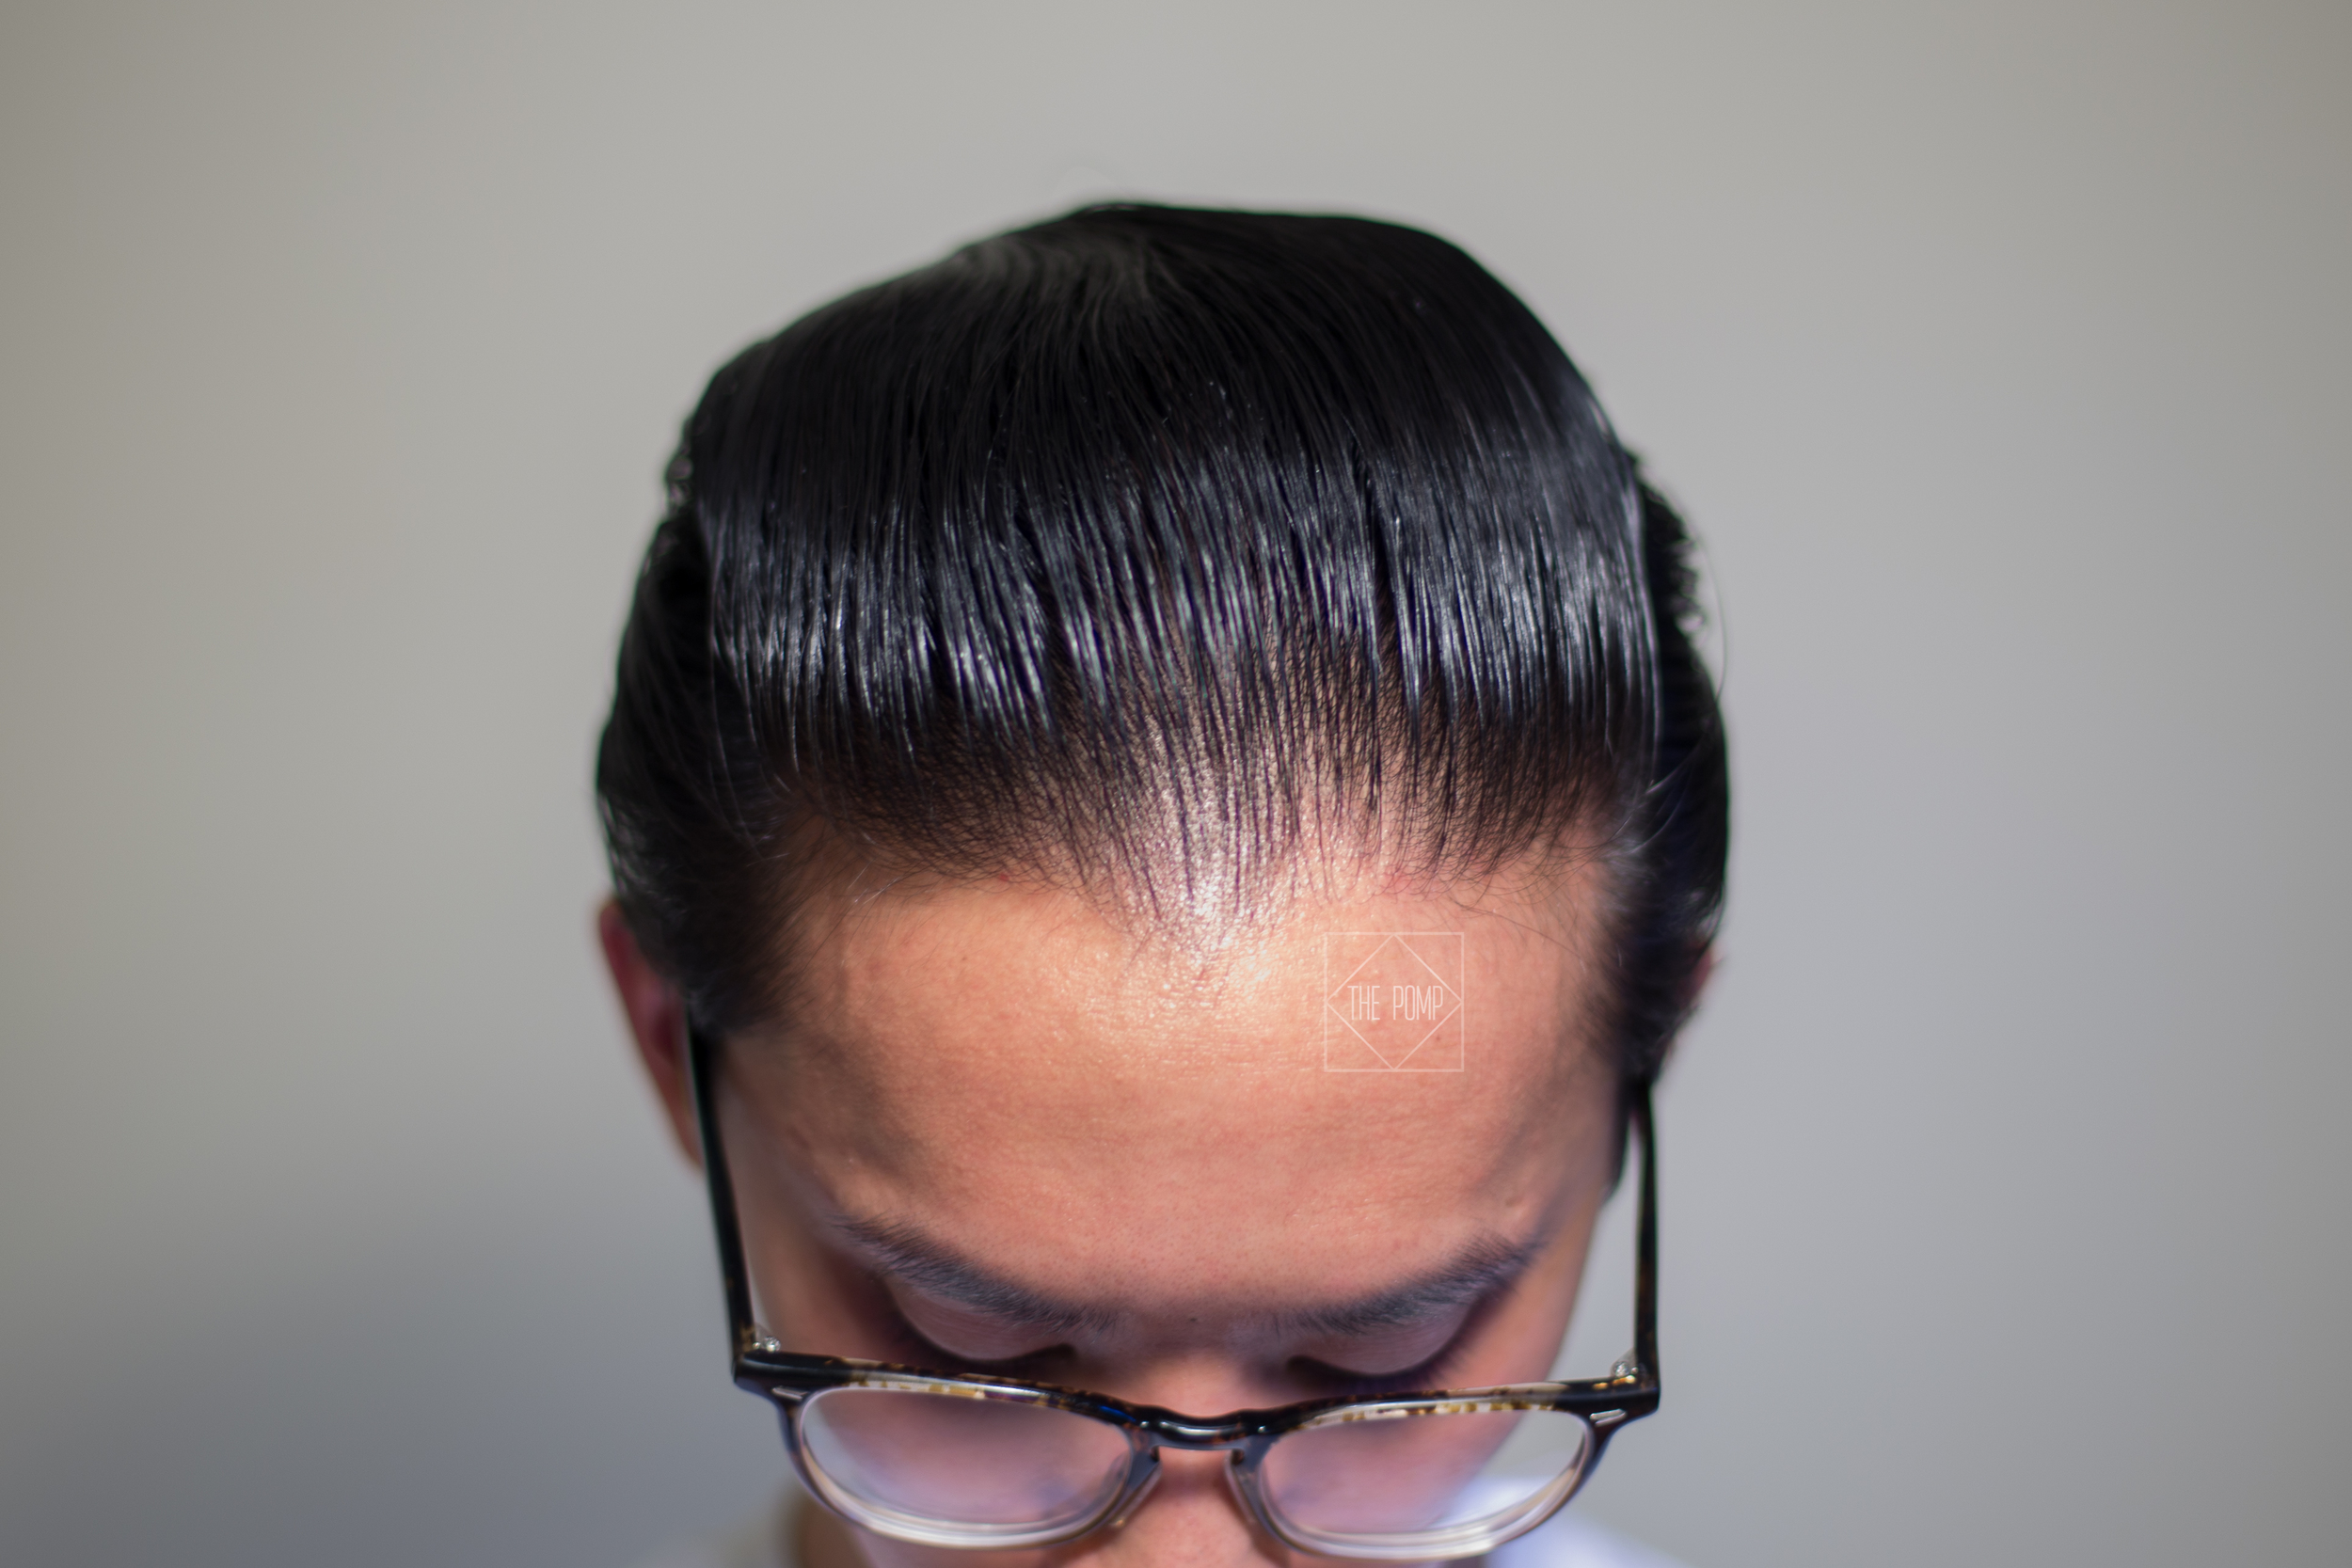 Crownes & Combes Premium Pomade final shine